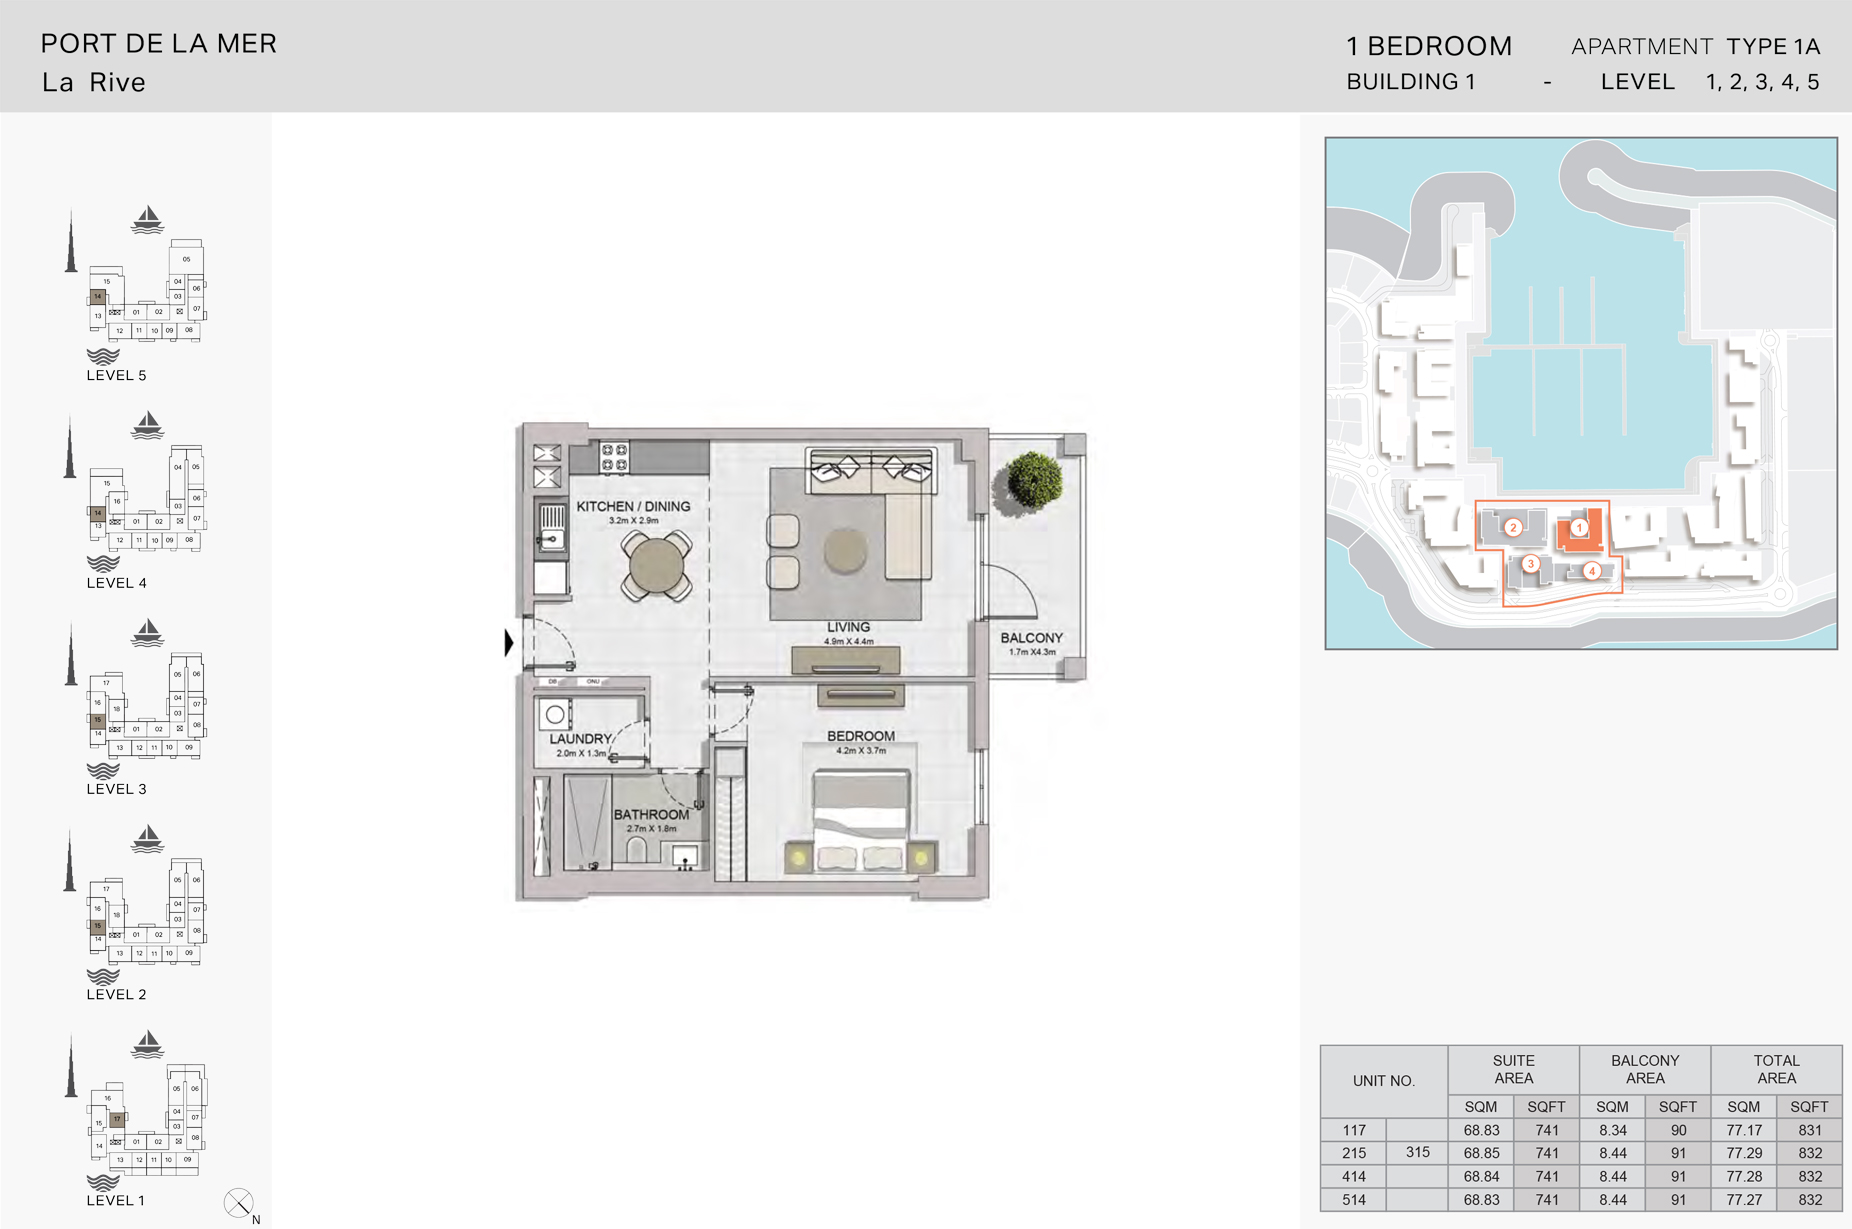 1 Bedroom Build1 Type1A  Size 832 sqft